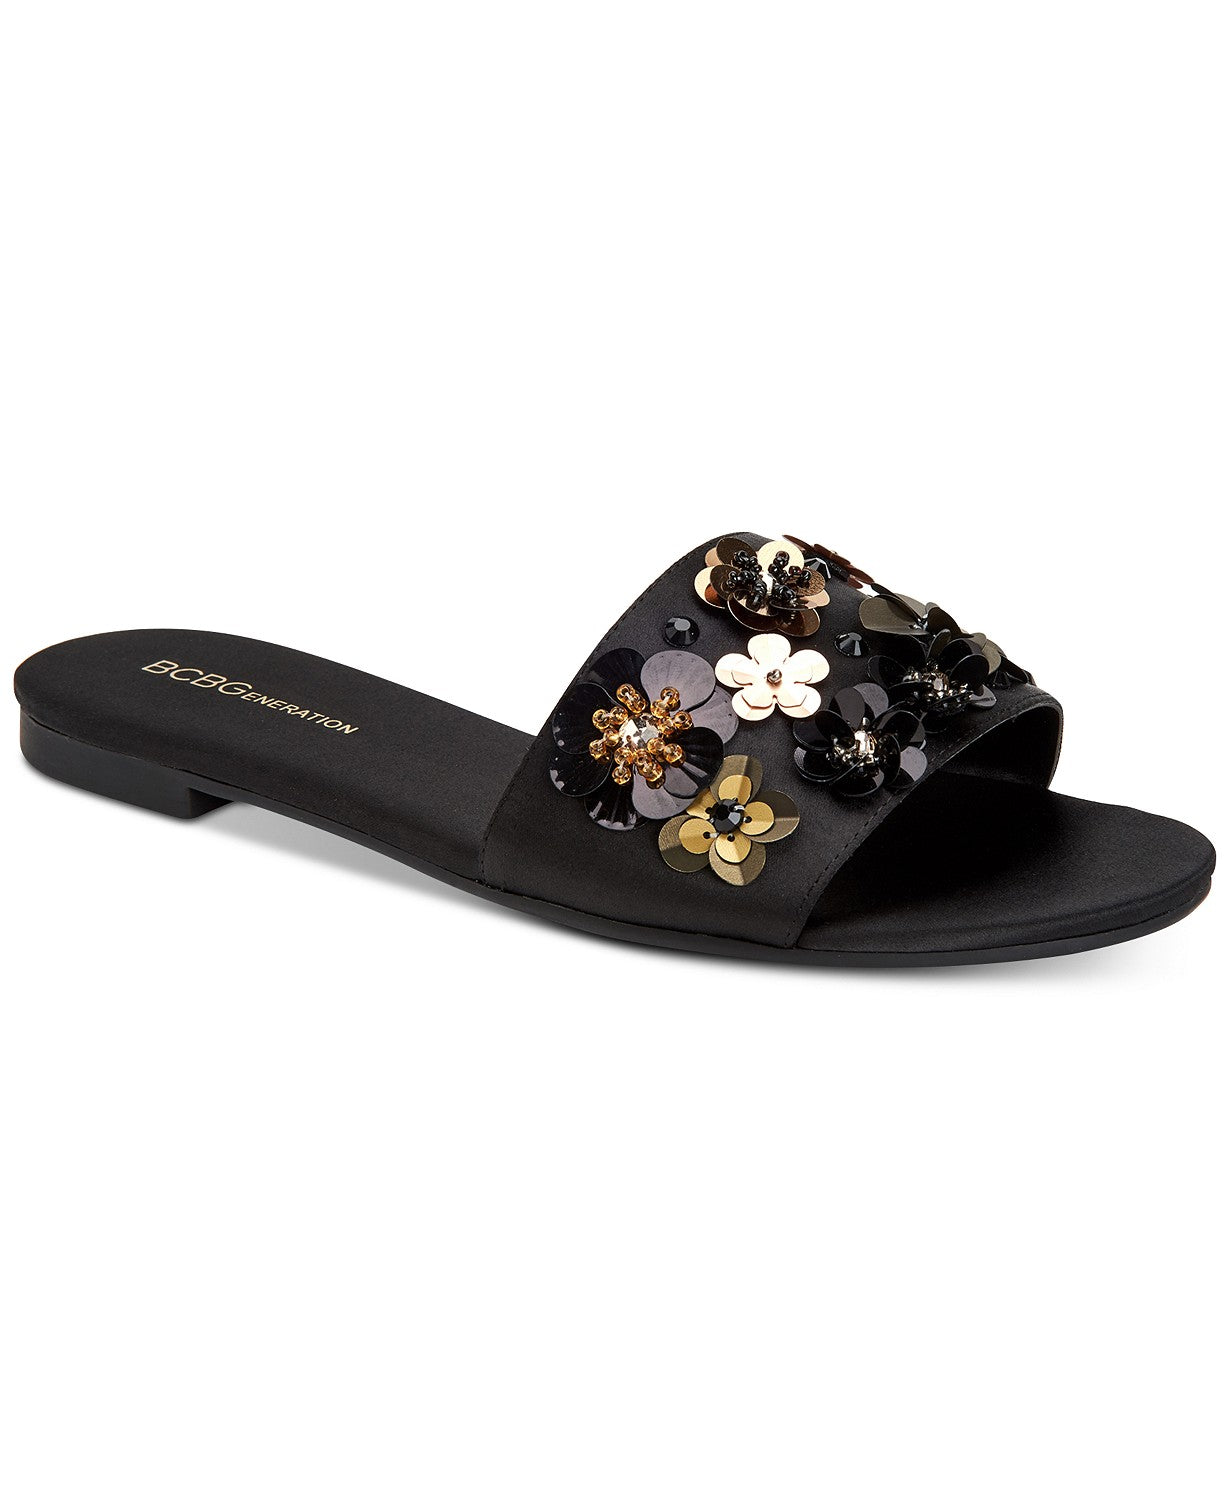 BCBGeneration Garnet Embellished Flat Slide Sandals